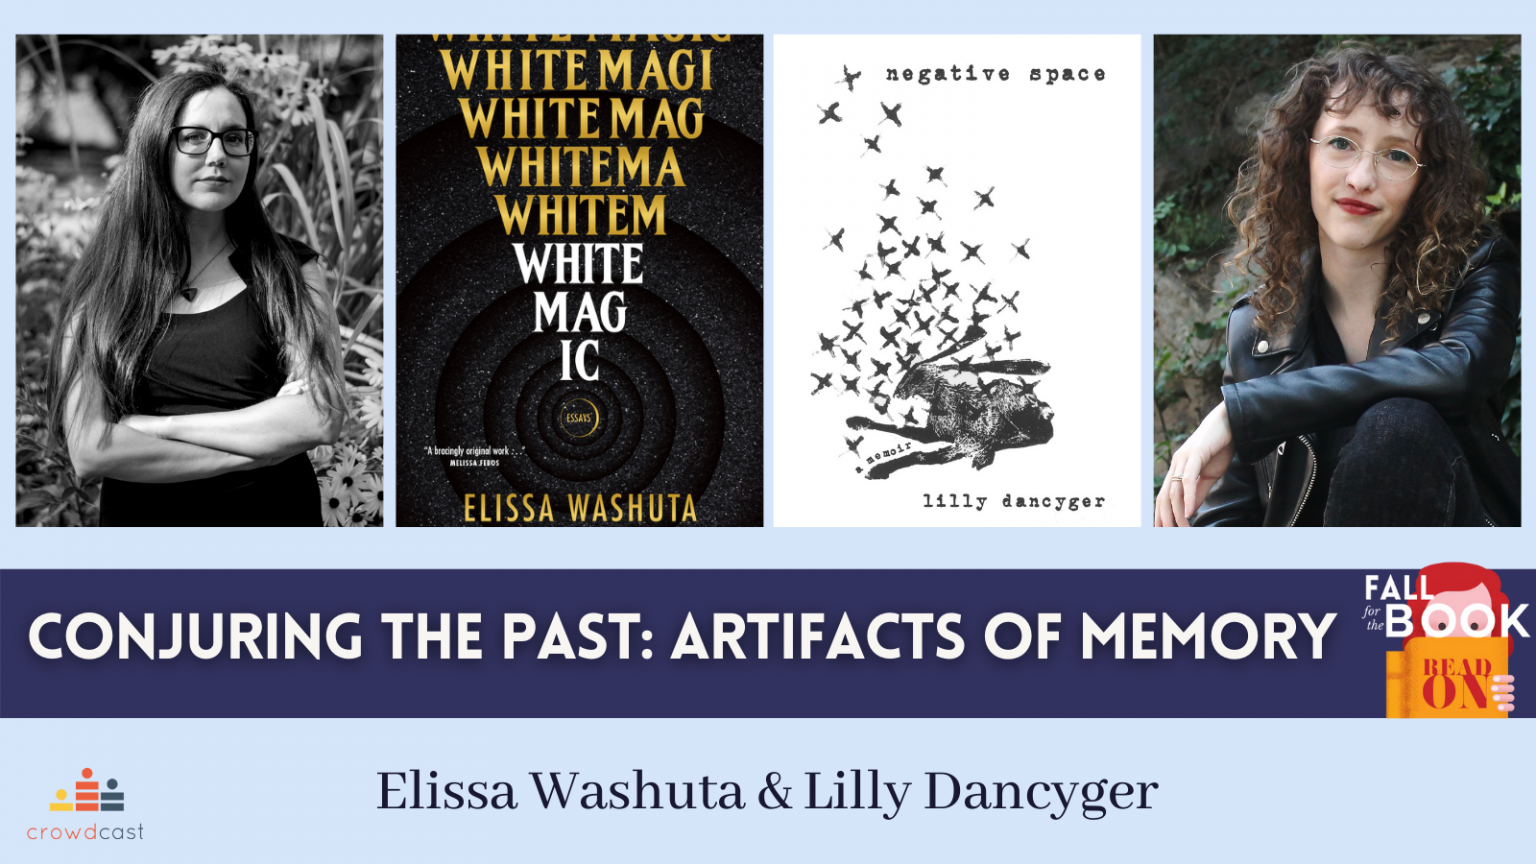 Conjuring the Past: Artifacts of Memory graphic